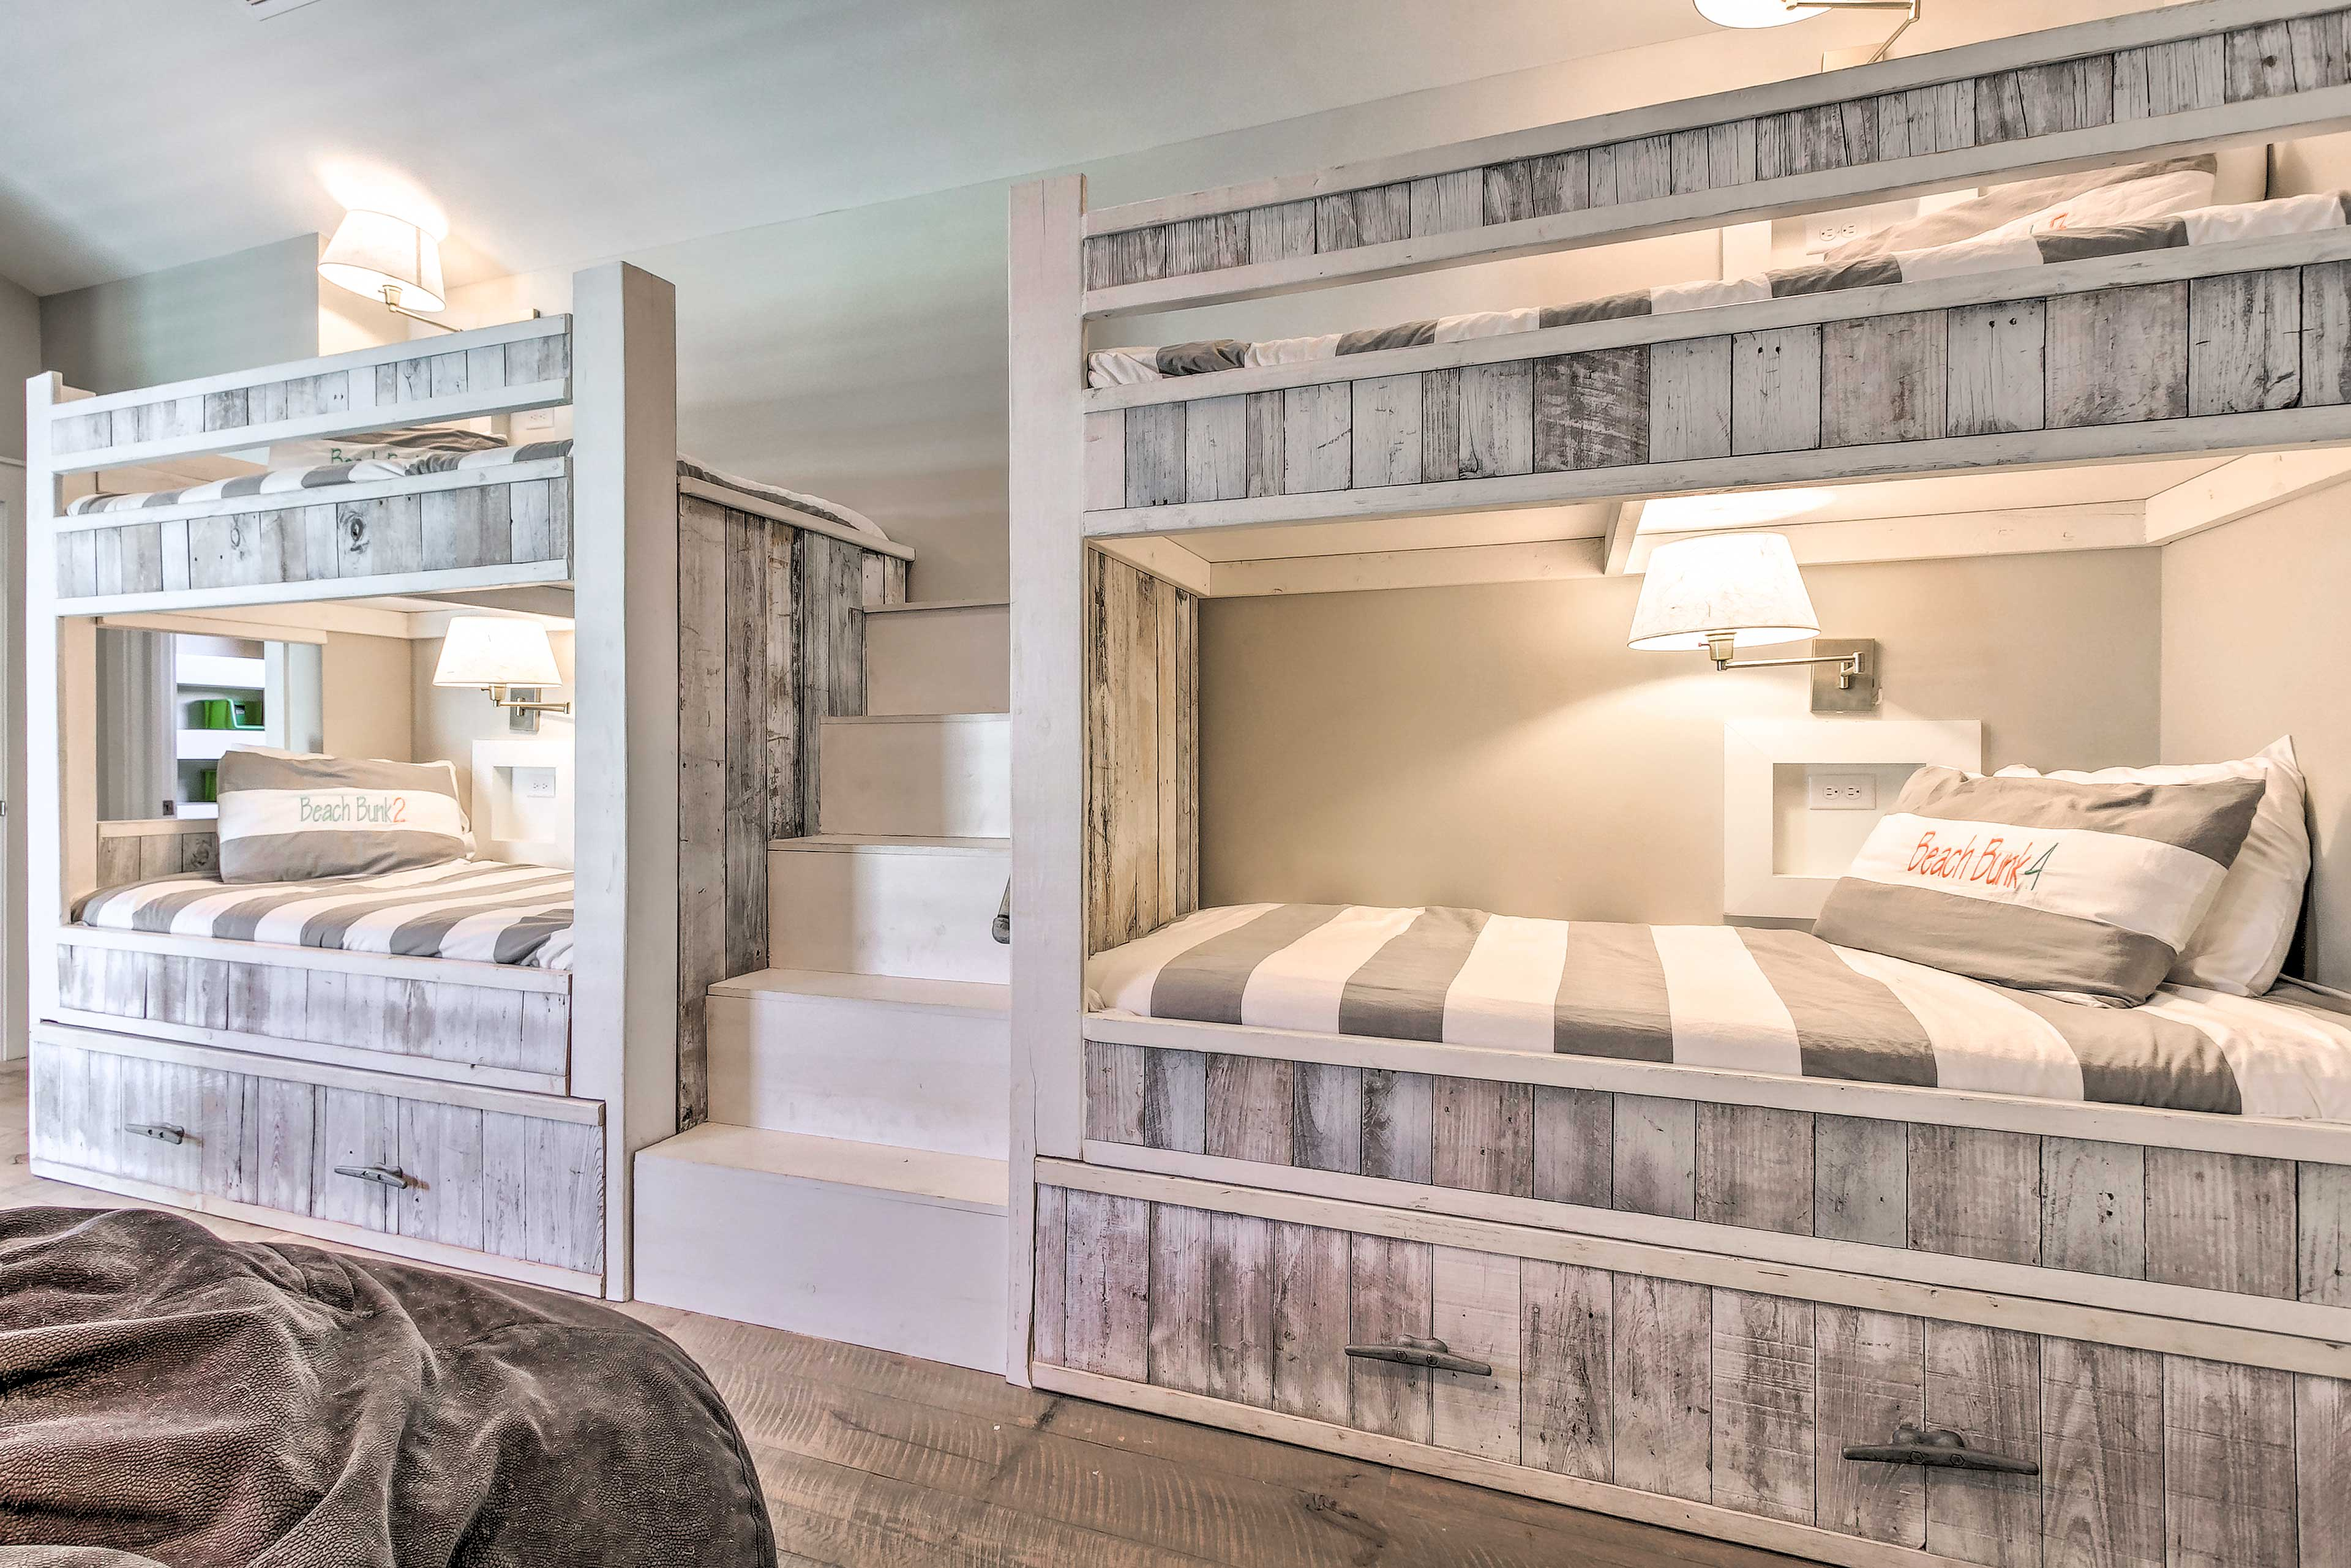 In total, this room can sleep 6 guests, making it ideal for kids' sleepovers!